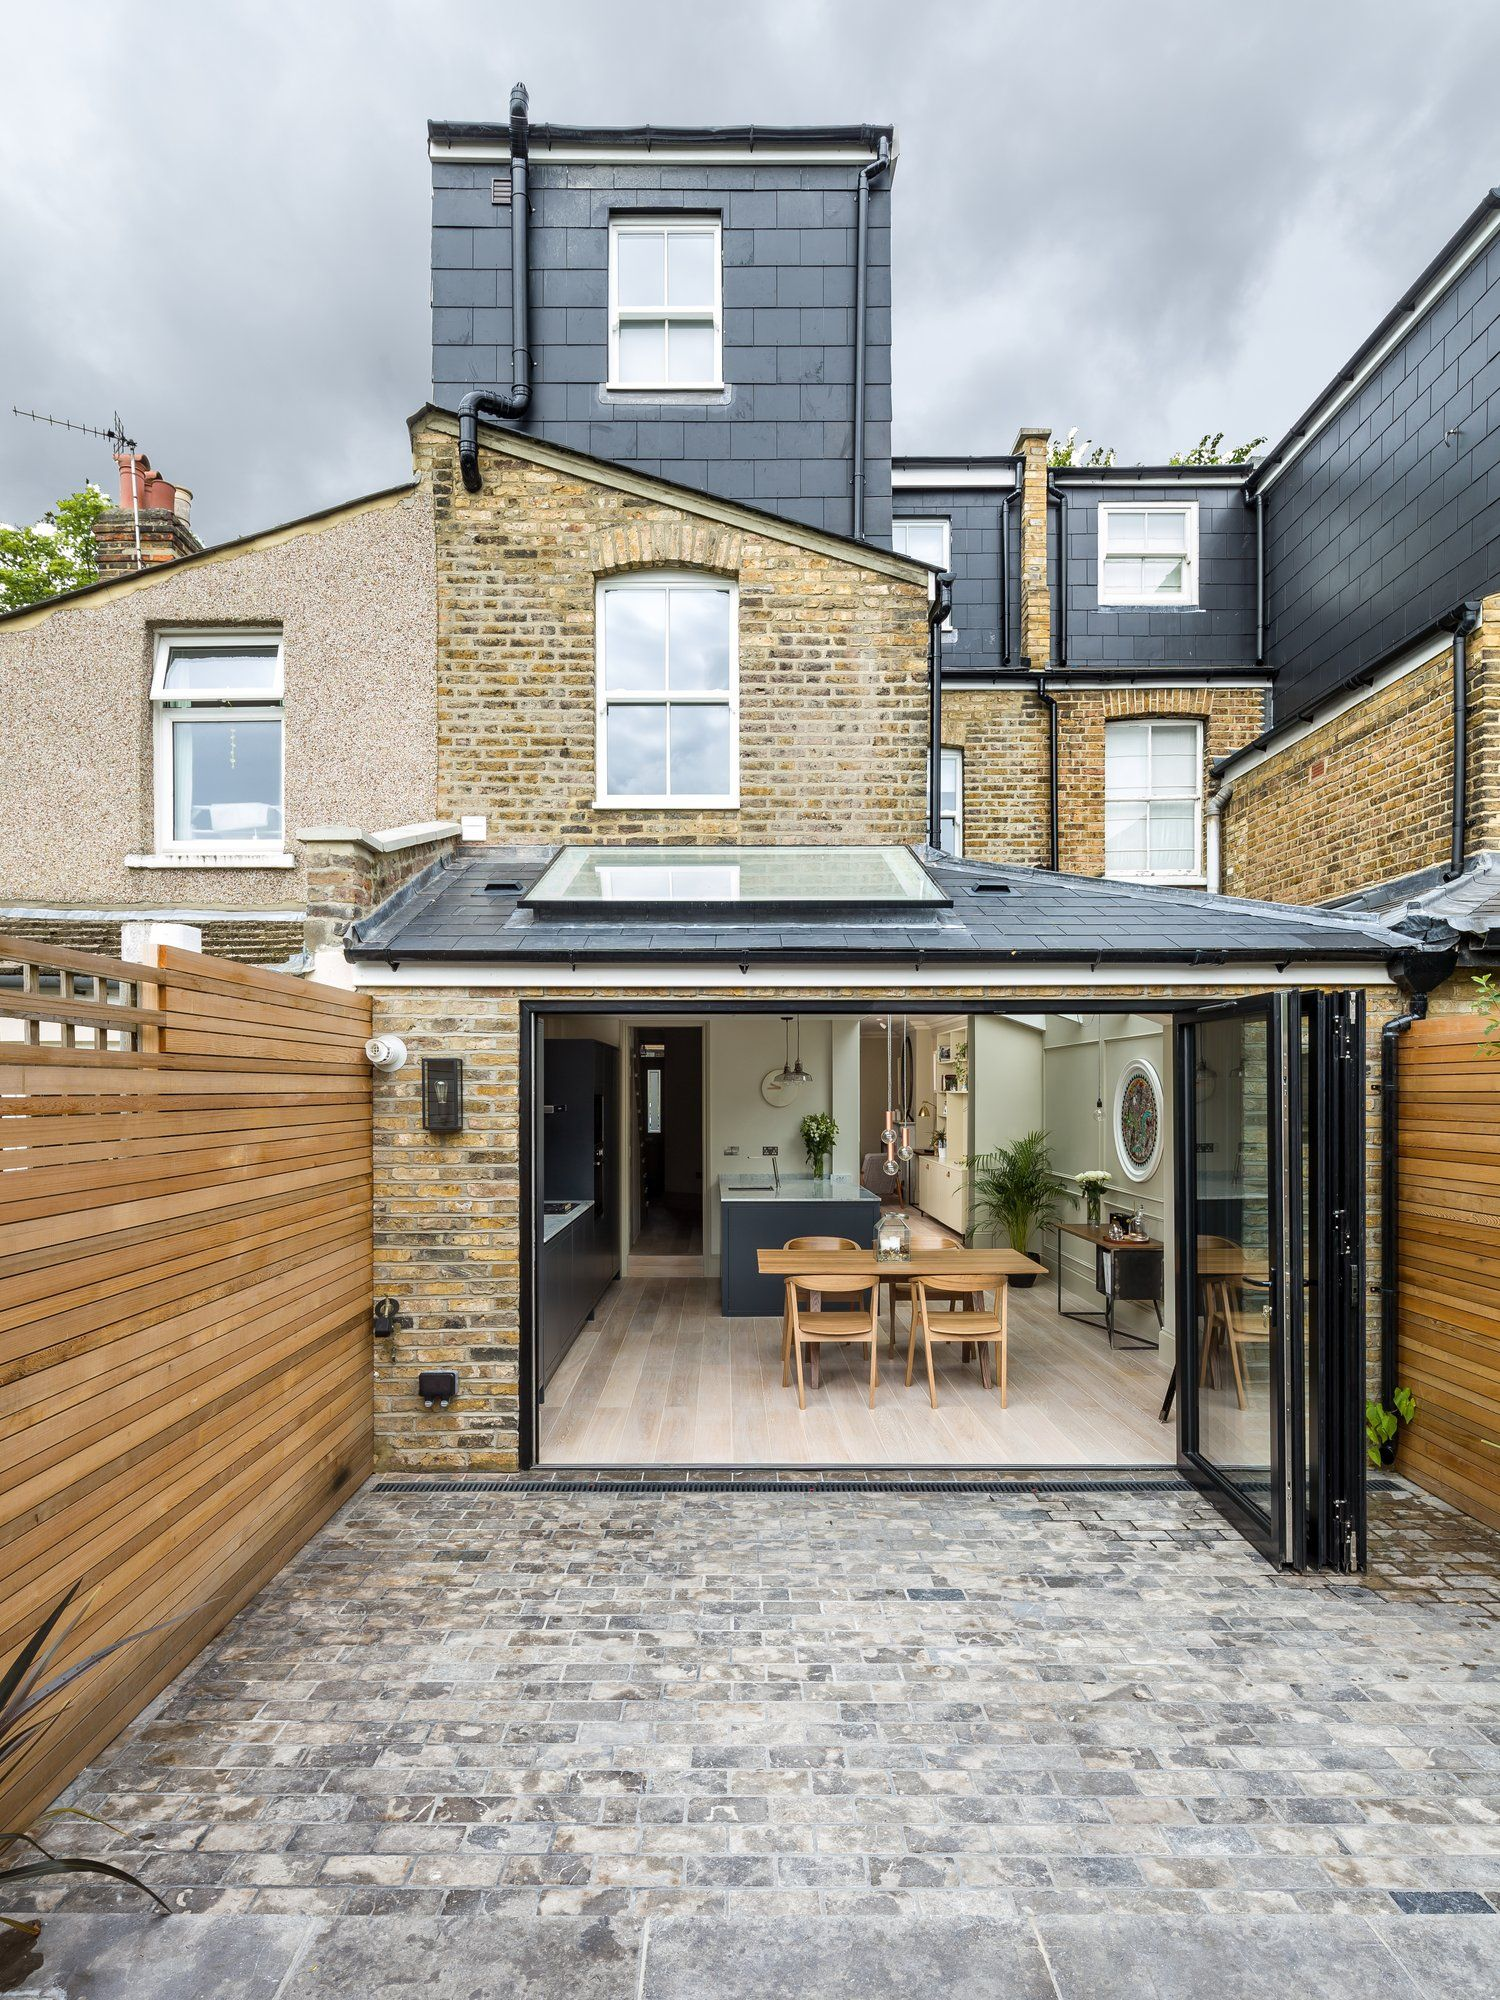 7 Stunning Home Extension Ideas: Pin By Ben Stenholm On Extension Ideas In 2020